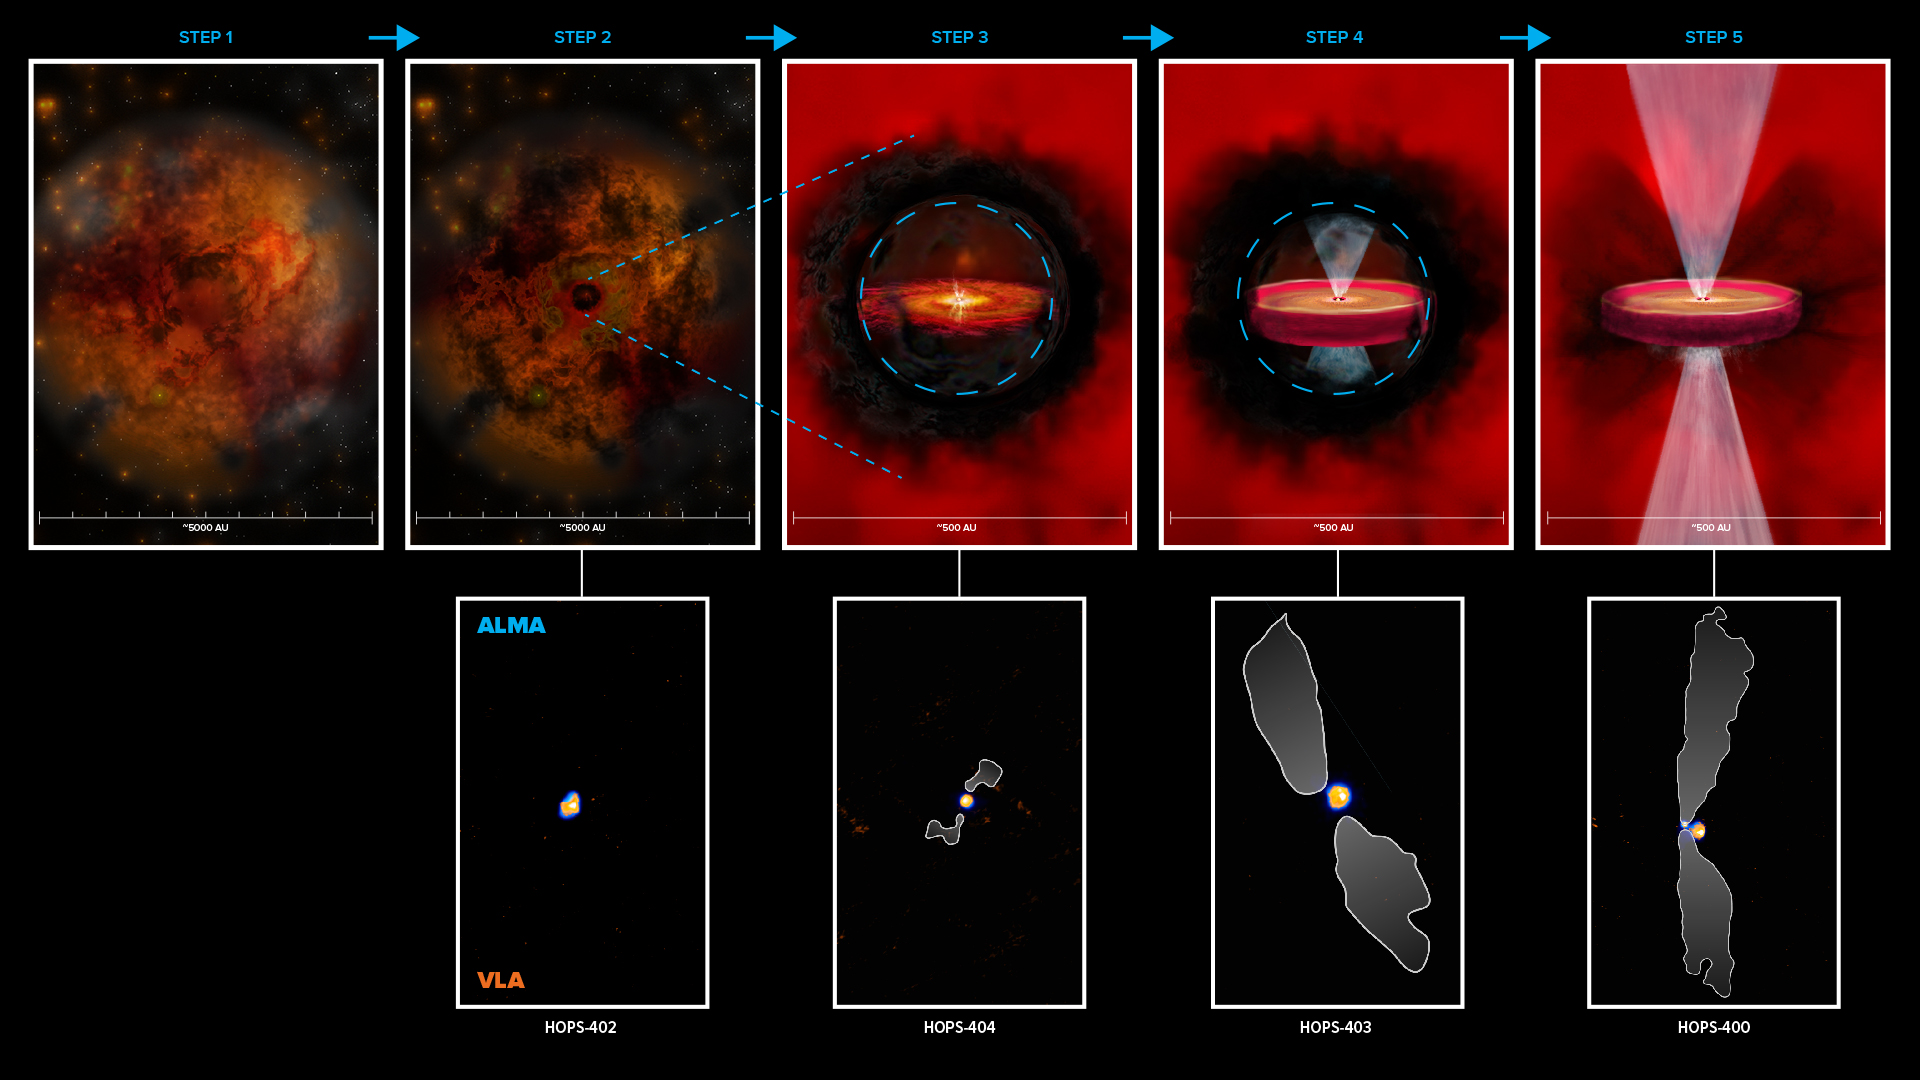 The formation of protostars